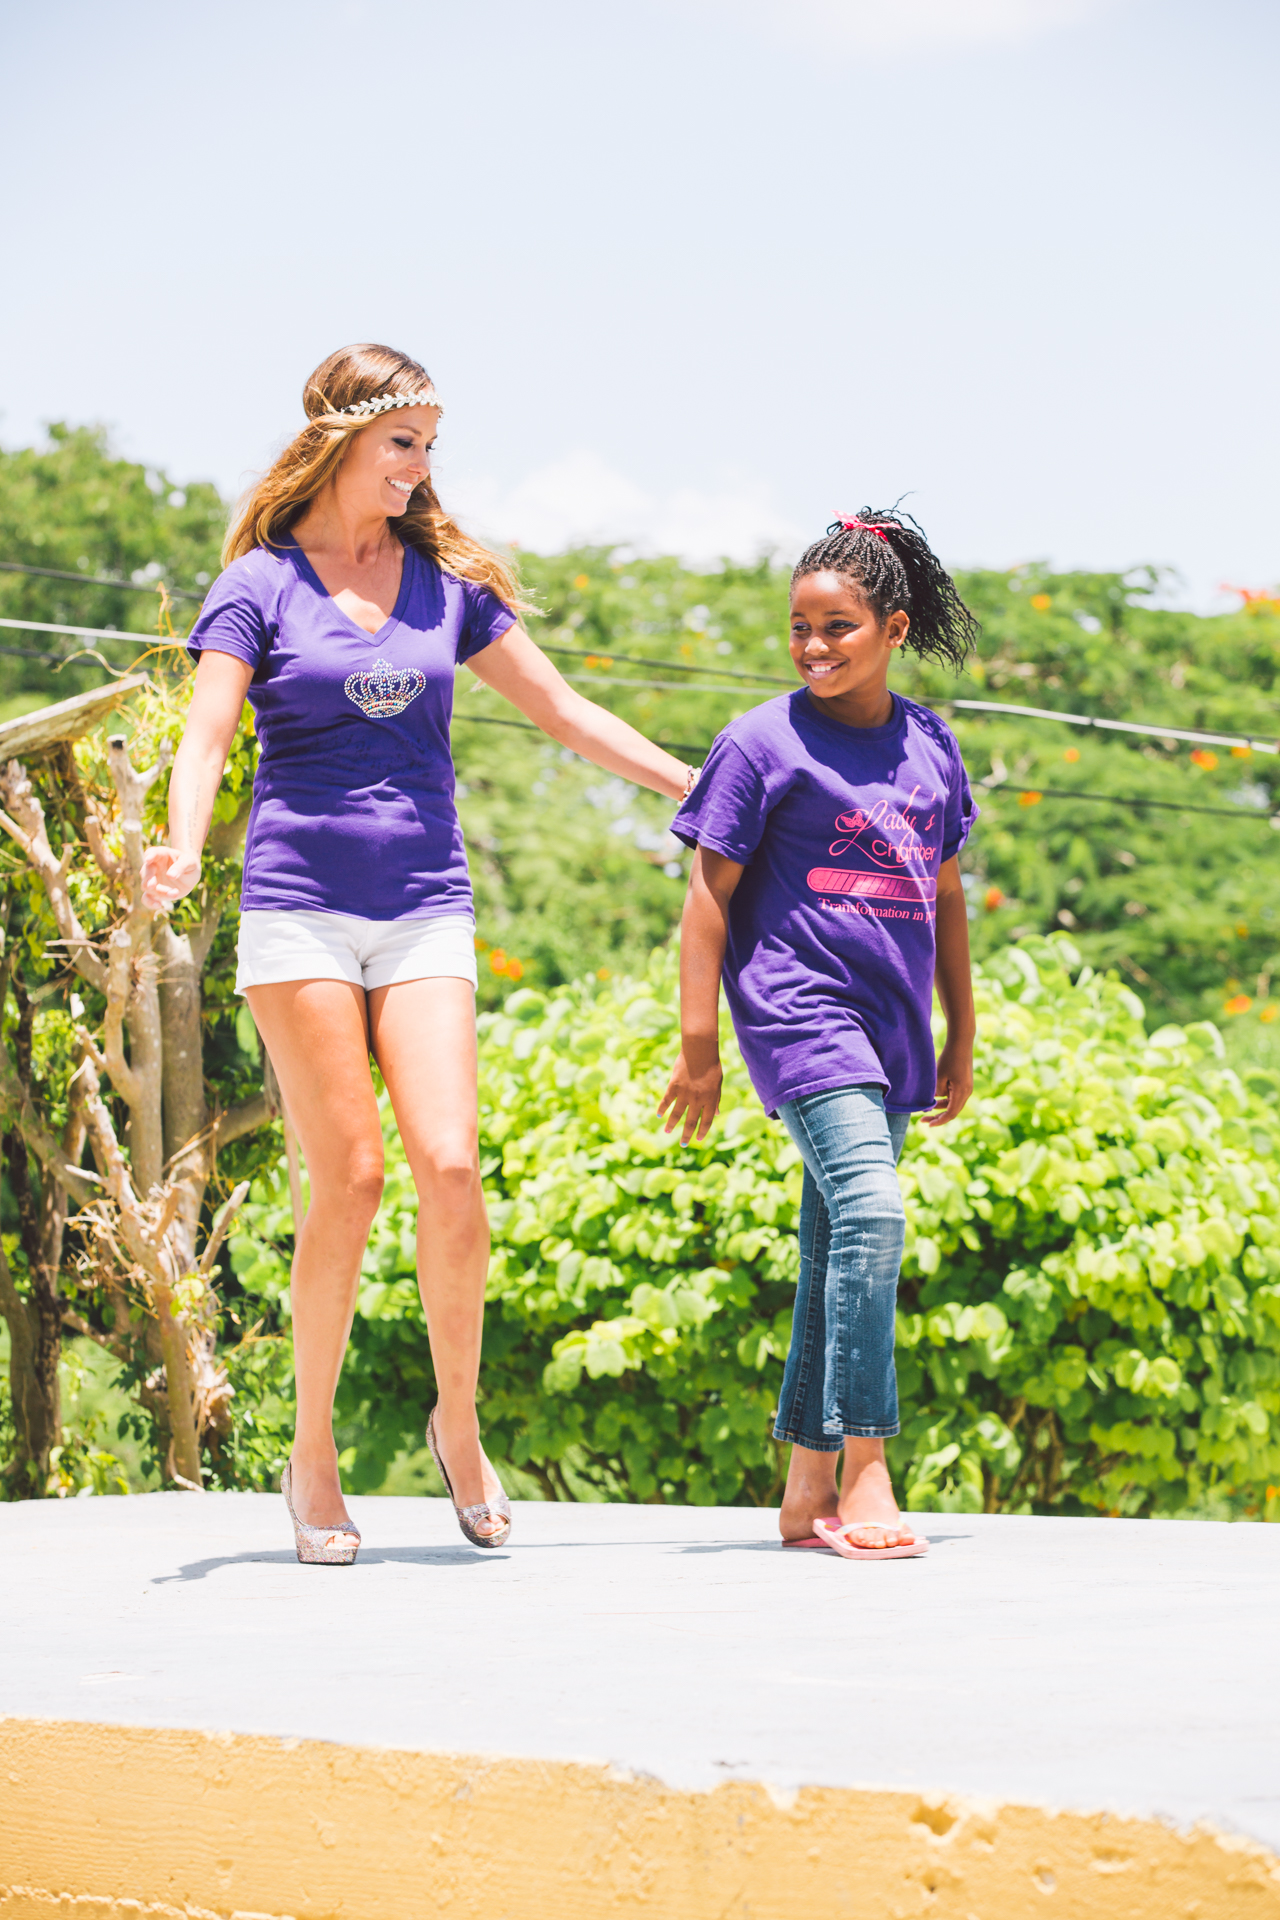 pageant of hope bahamas 2016-175.jpg